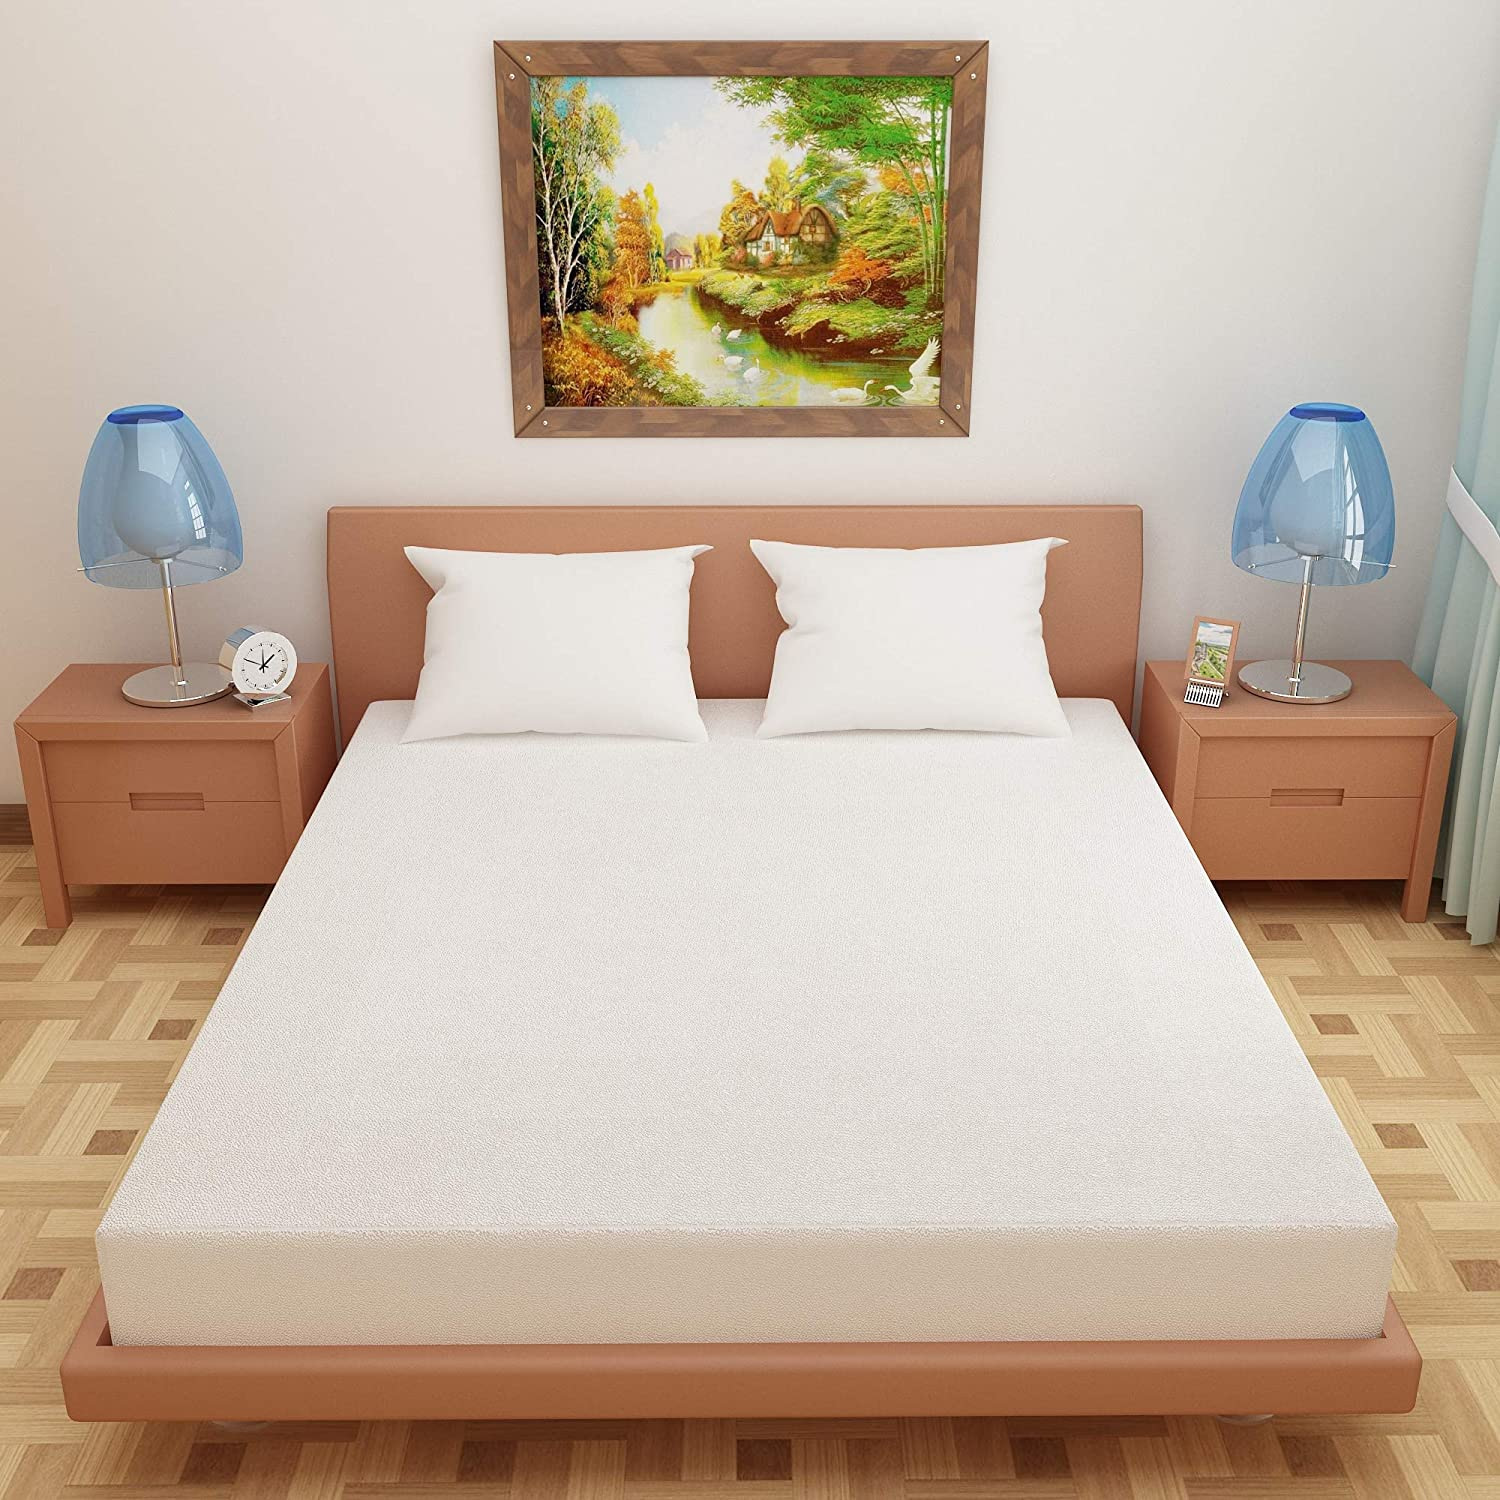 White Color waterproof and Dustproof Mattress Protector at Best Price Online